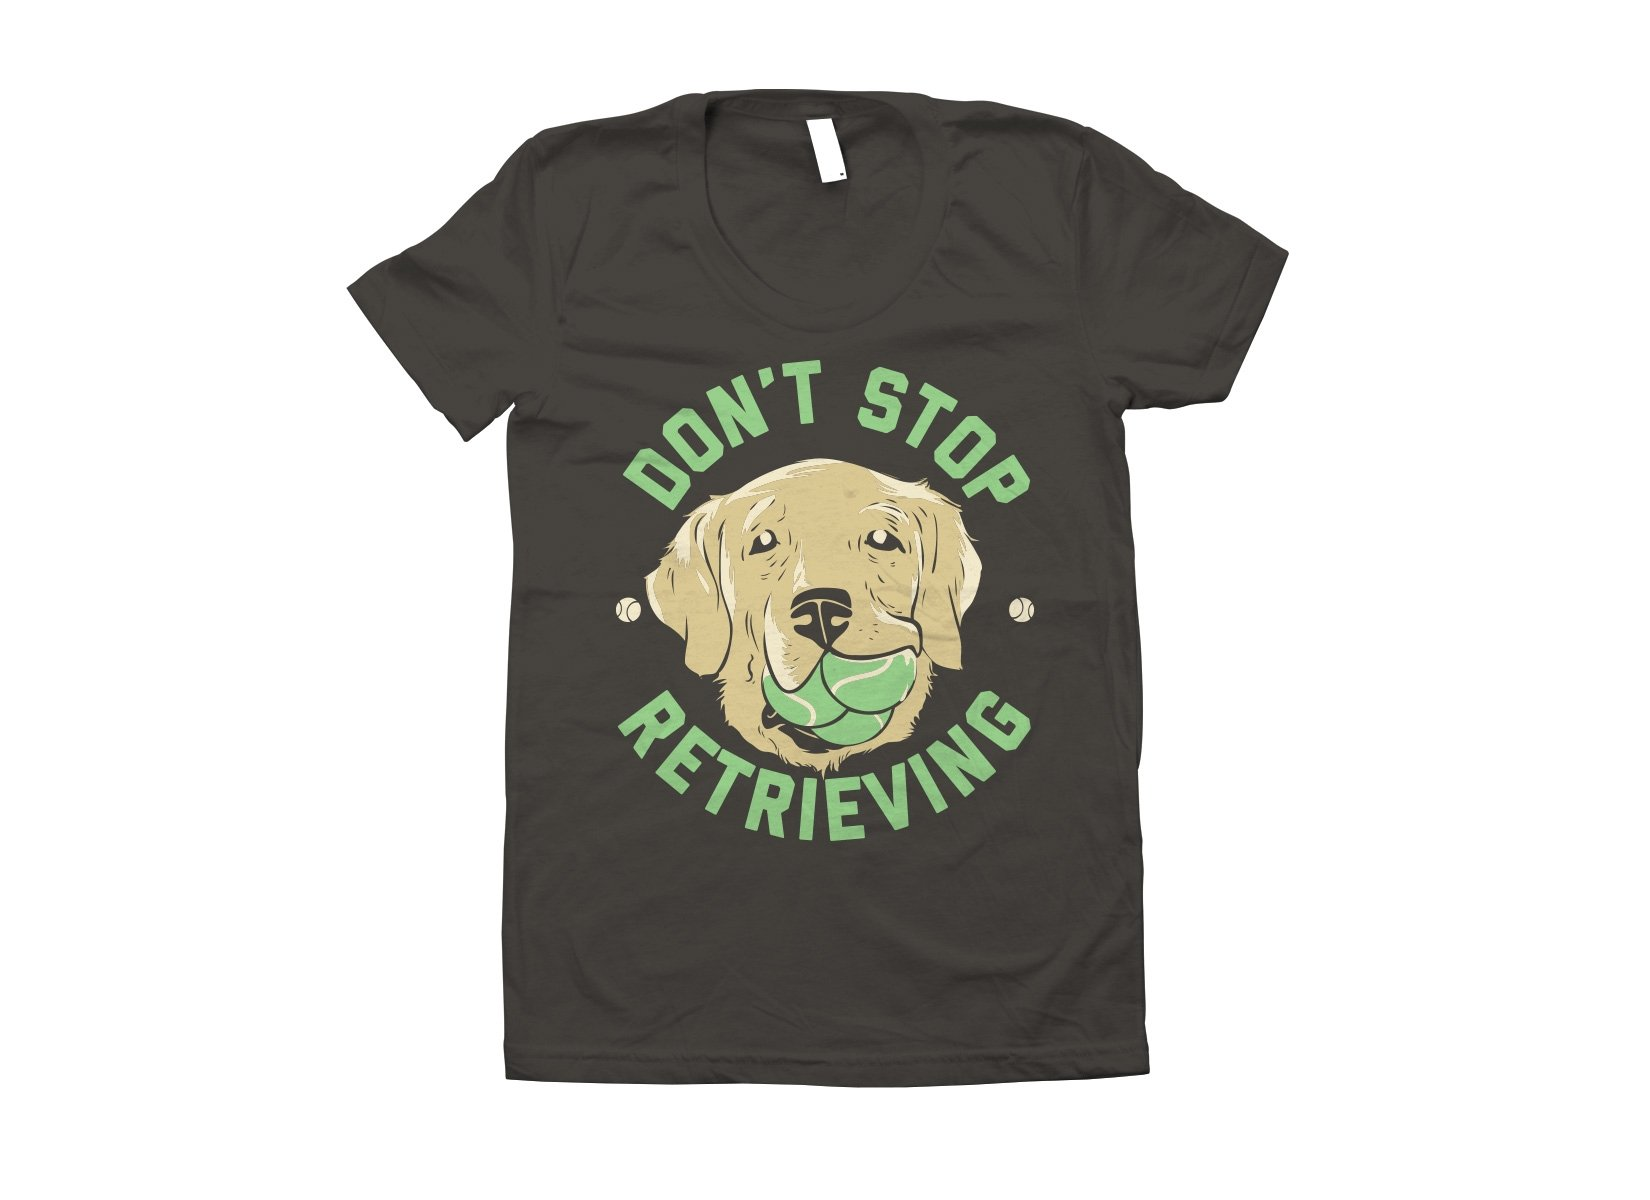 Don't Stop Retrieving on Juniors T-Shirt